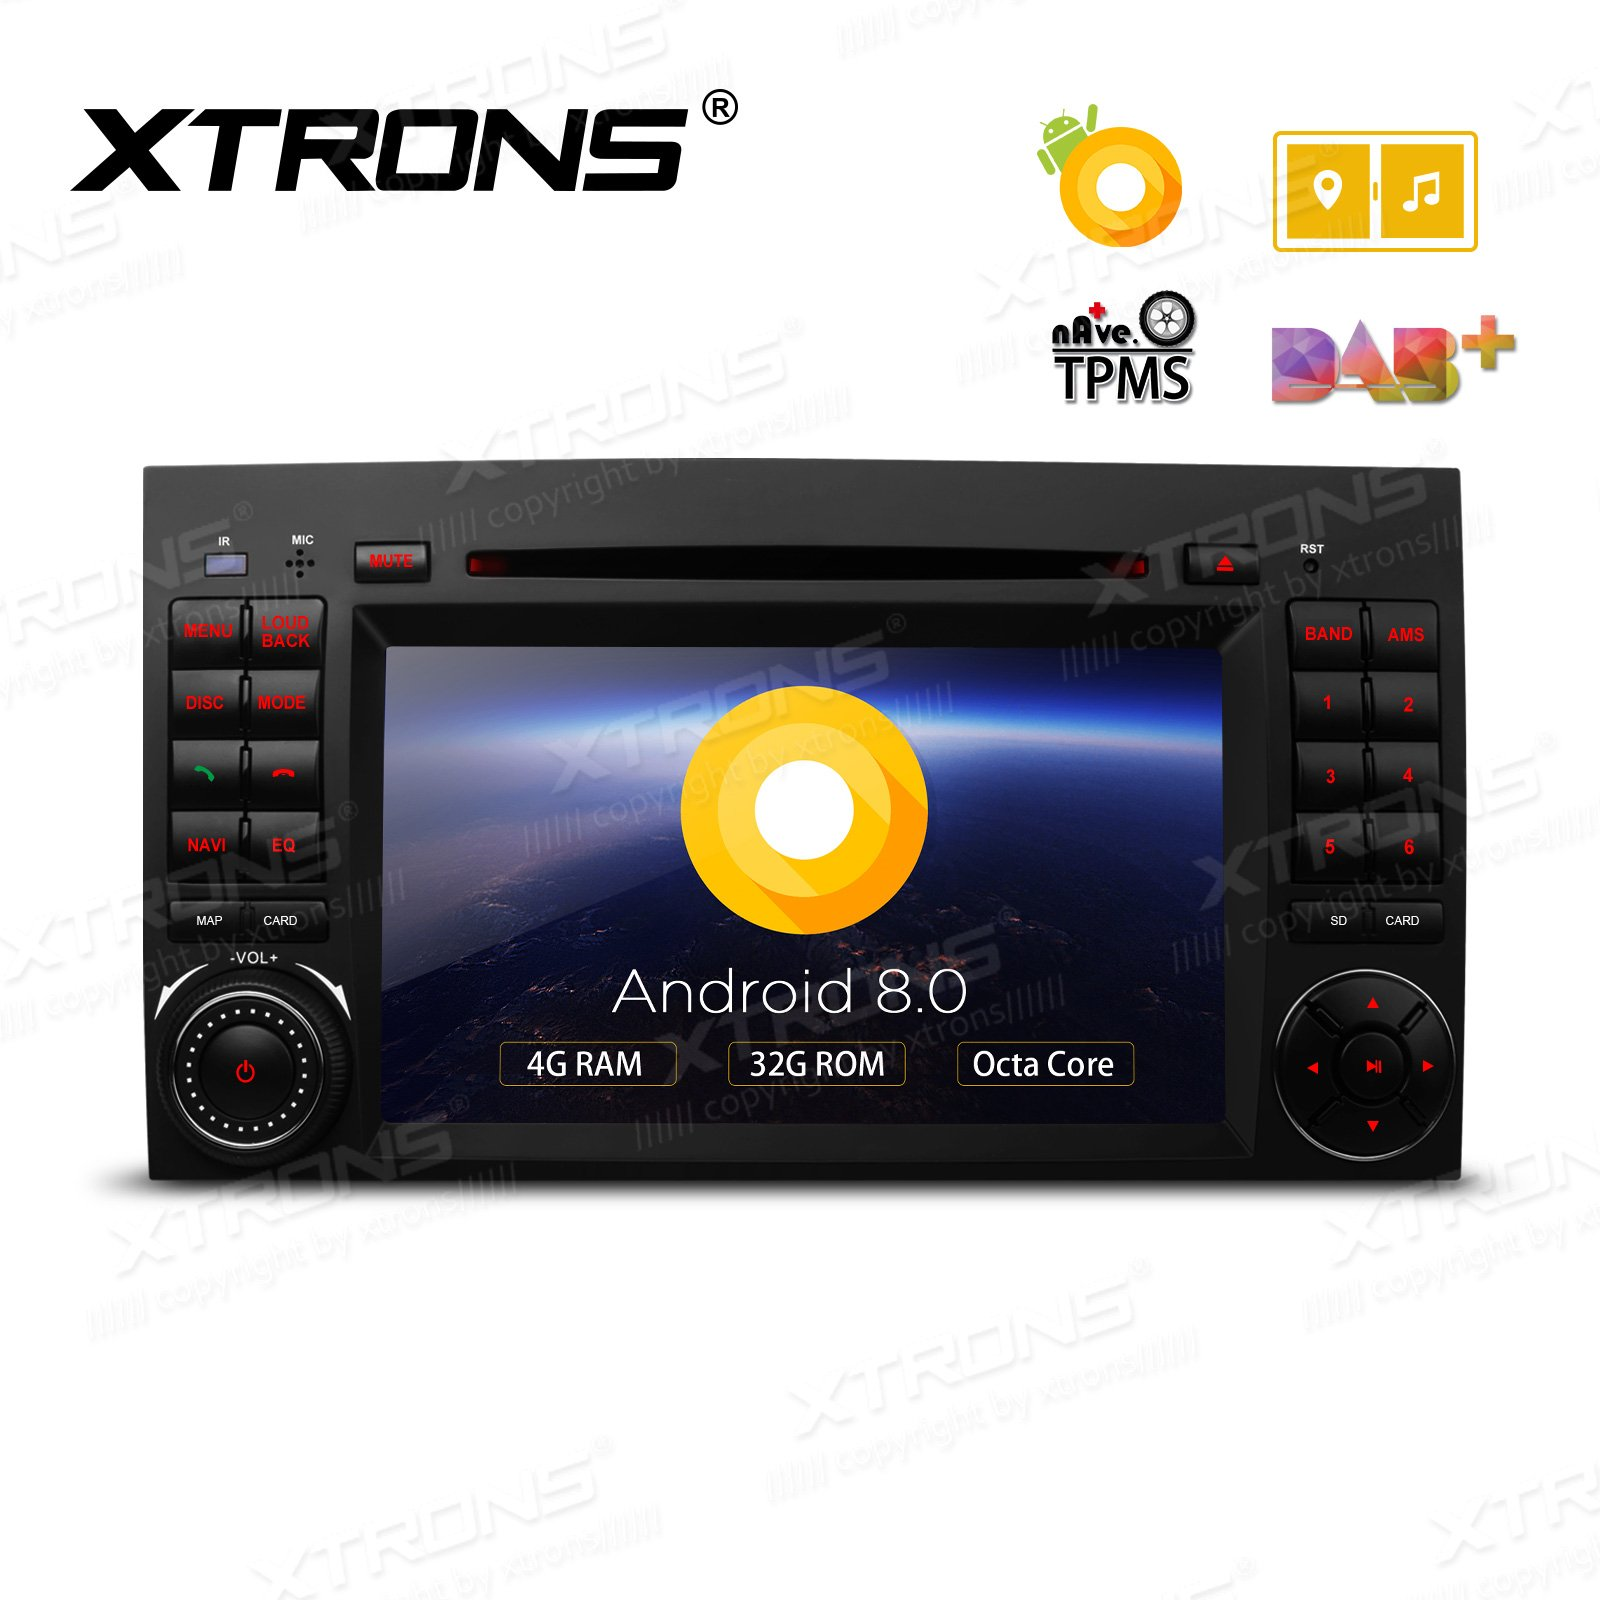 XTRONS 7'' Android 8.0 Octa Core 4G RAM 32G ROM HD Digital Multi-touch Screen DVR Car Stereo DVD Player Tire Pressure Monitoring Wifi OBD2 for Mercedes Benz A Class B-W245